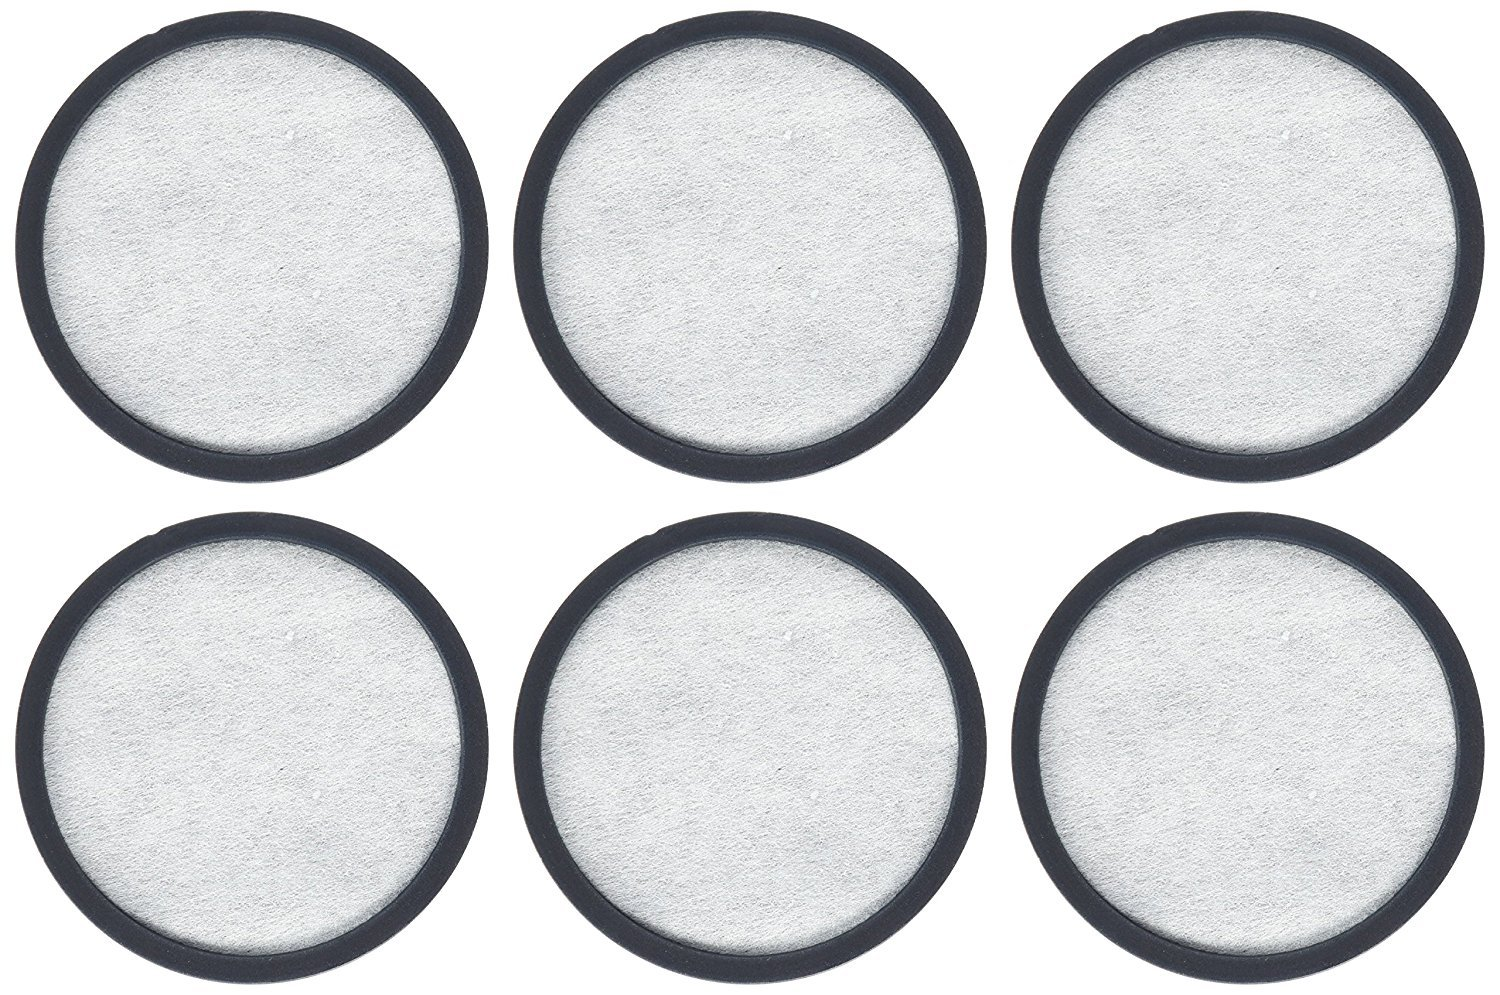 Everyday WWF-6 6-Replacement Charcoal Water Filters for Mr. Coffee Machines, White